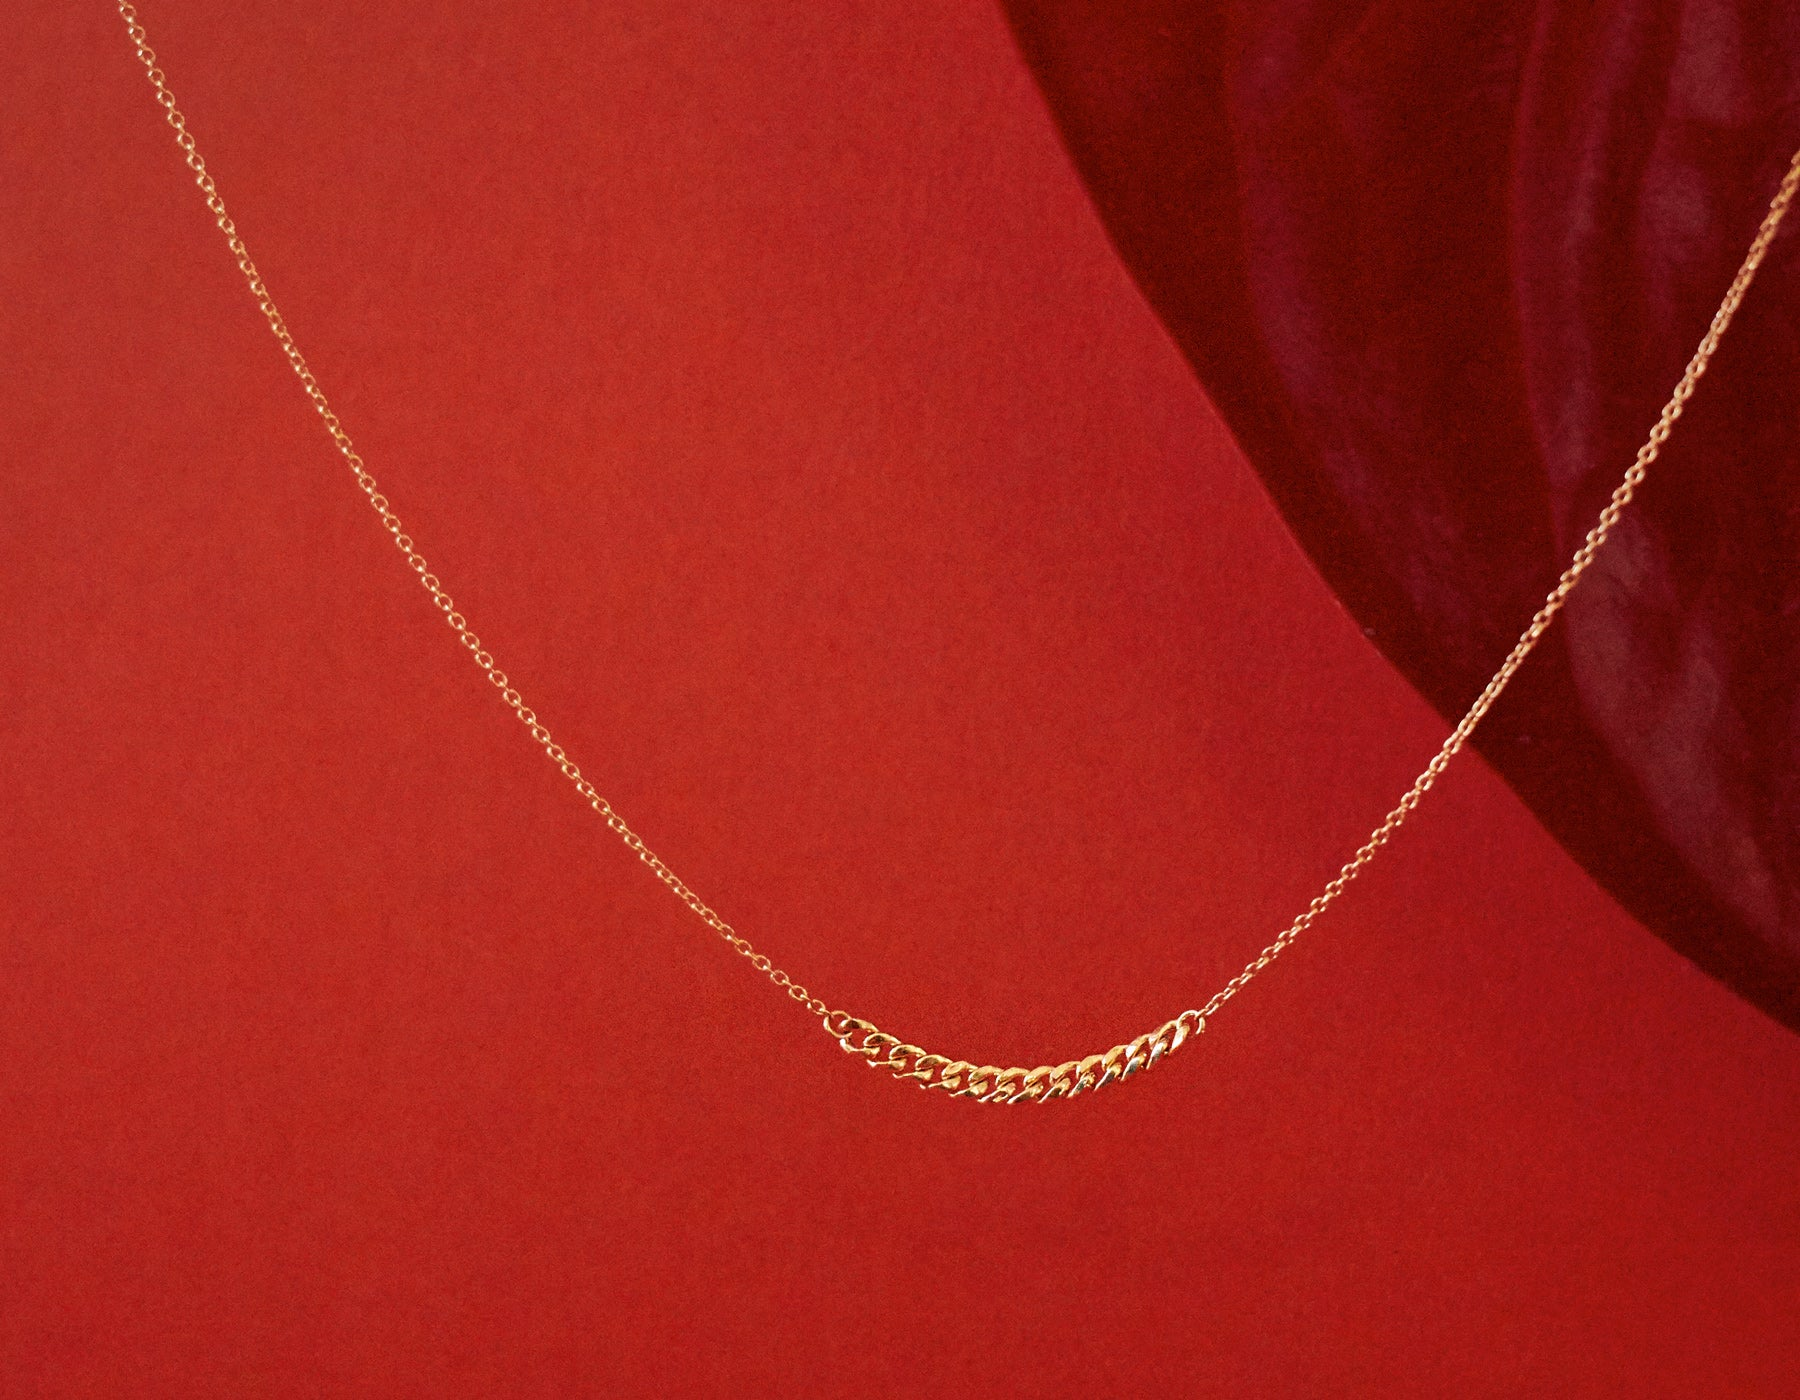 5707497ebbe Simple classic chain 14k solid gold Interlink Necklace red velvet Vrai and  Oro